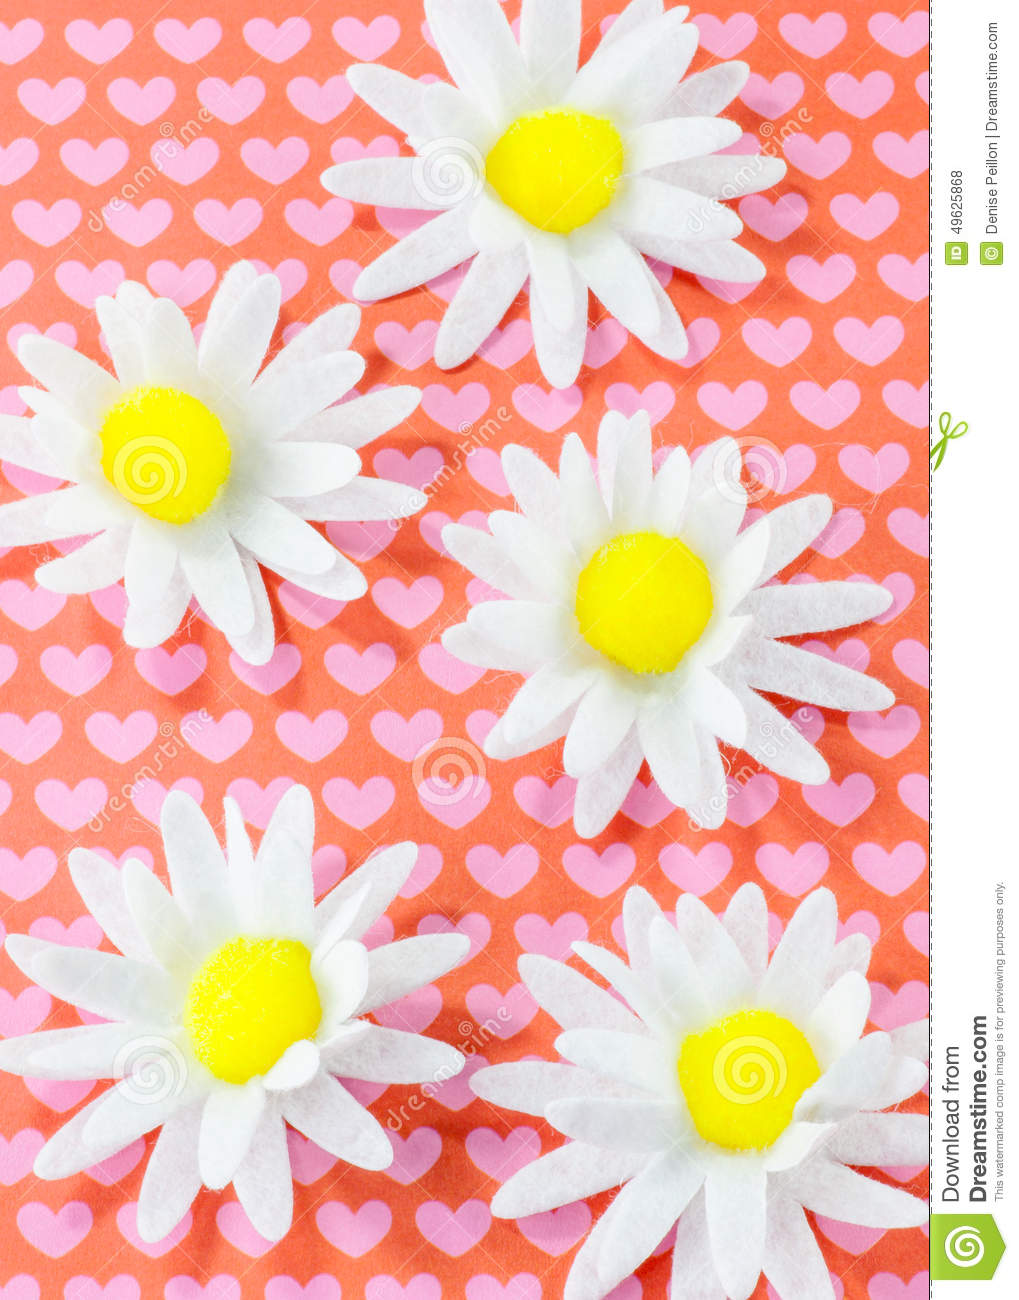 Daisys And Hearts Stock Photo Image Of Paper Close 49625868